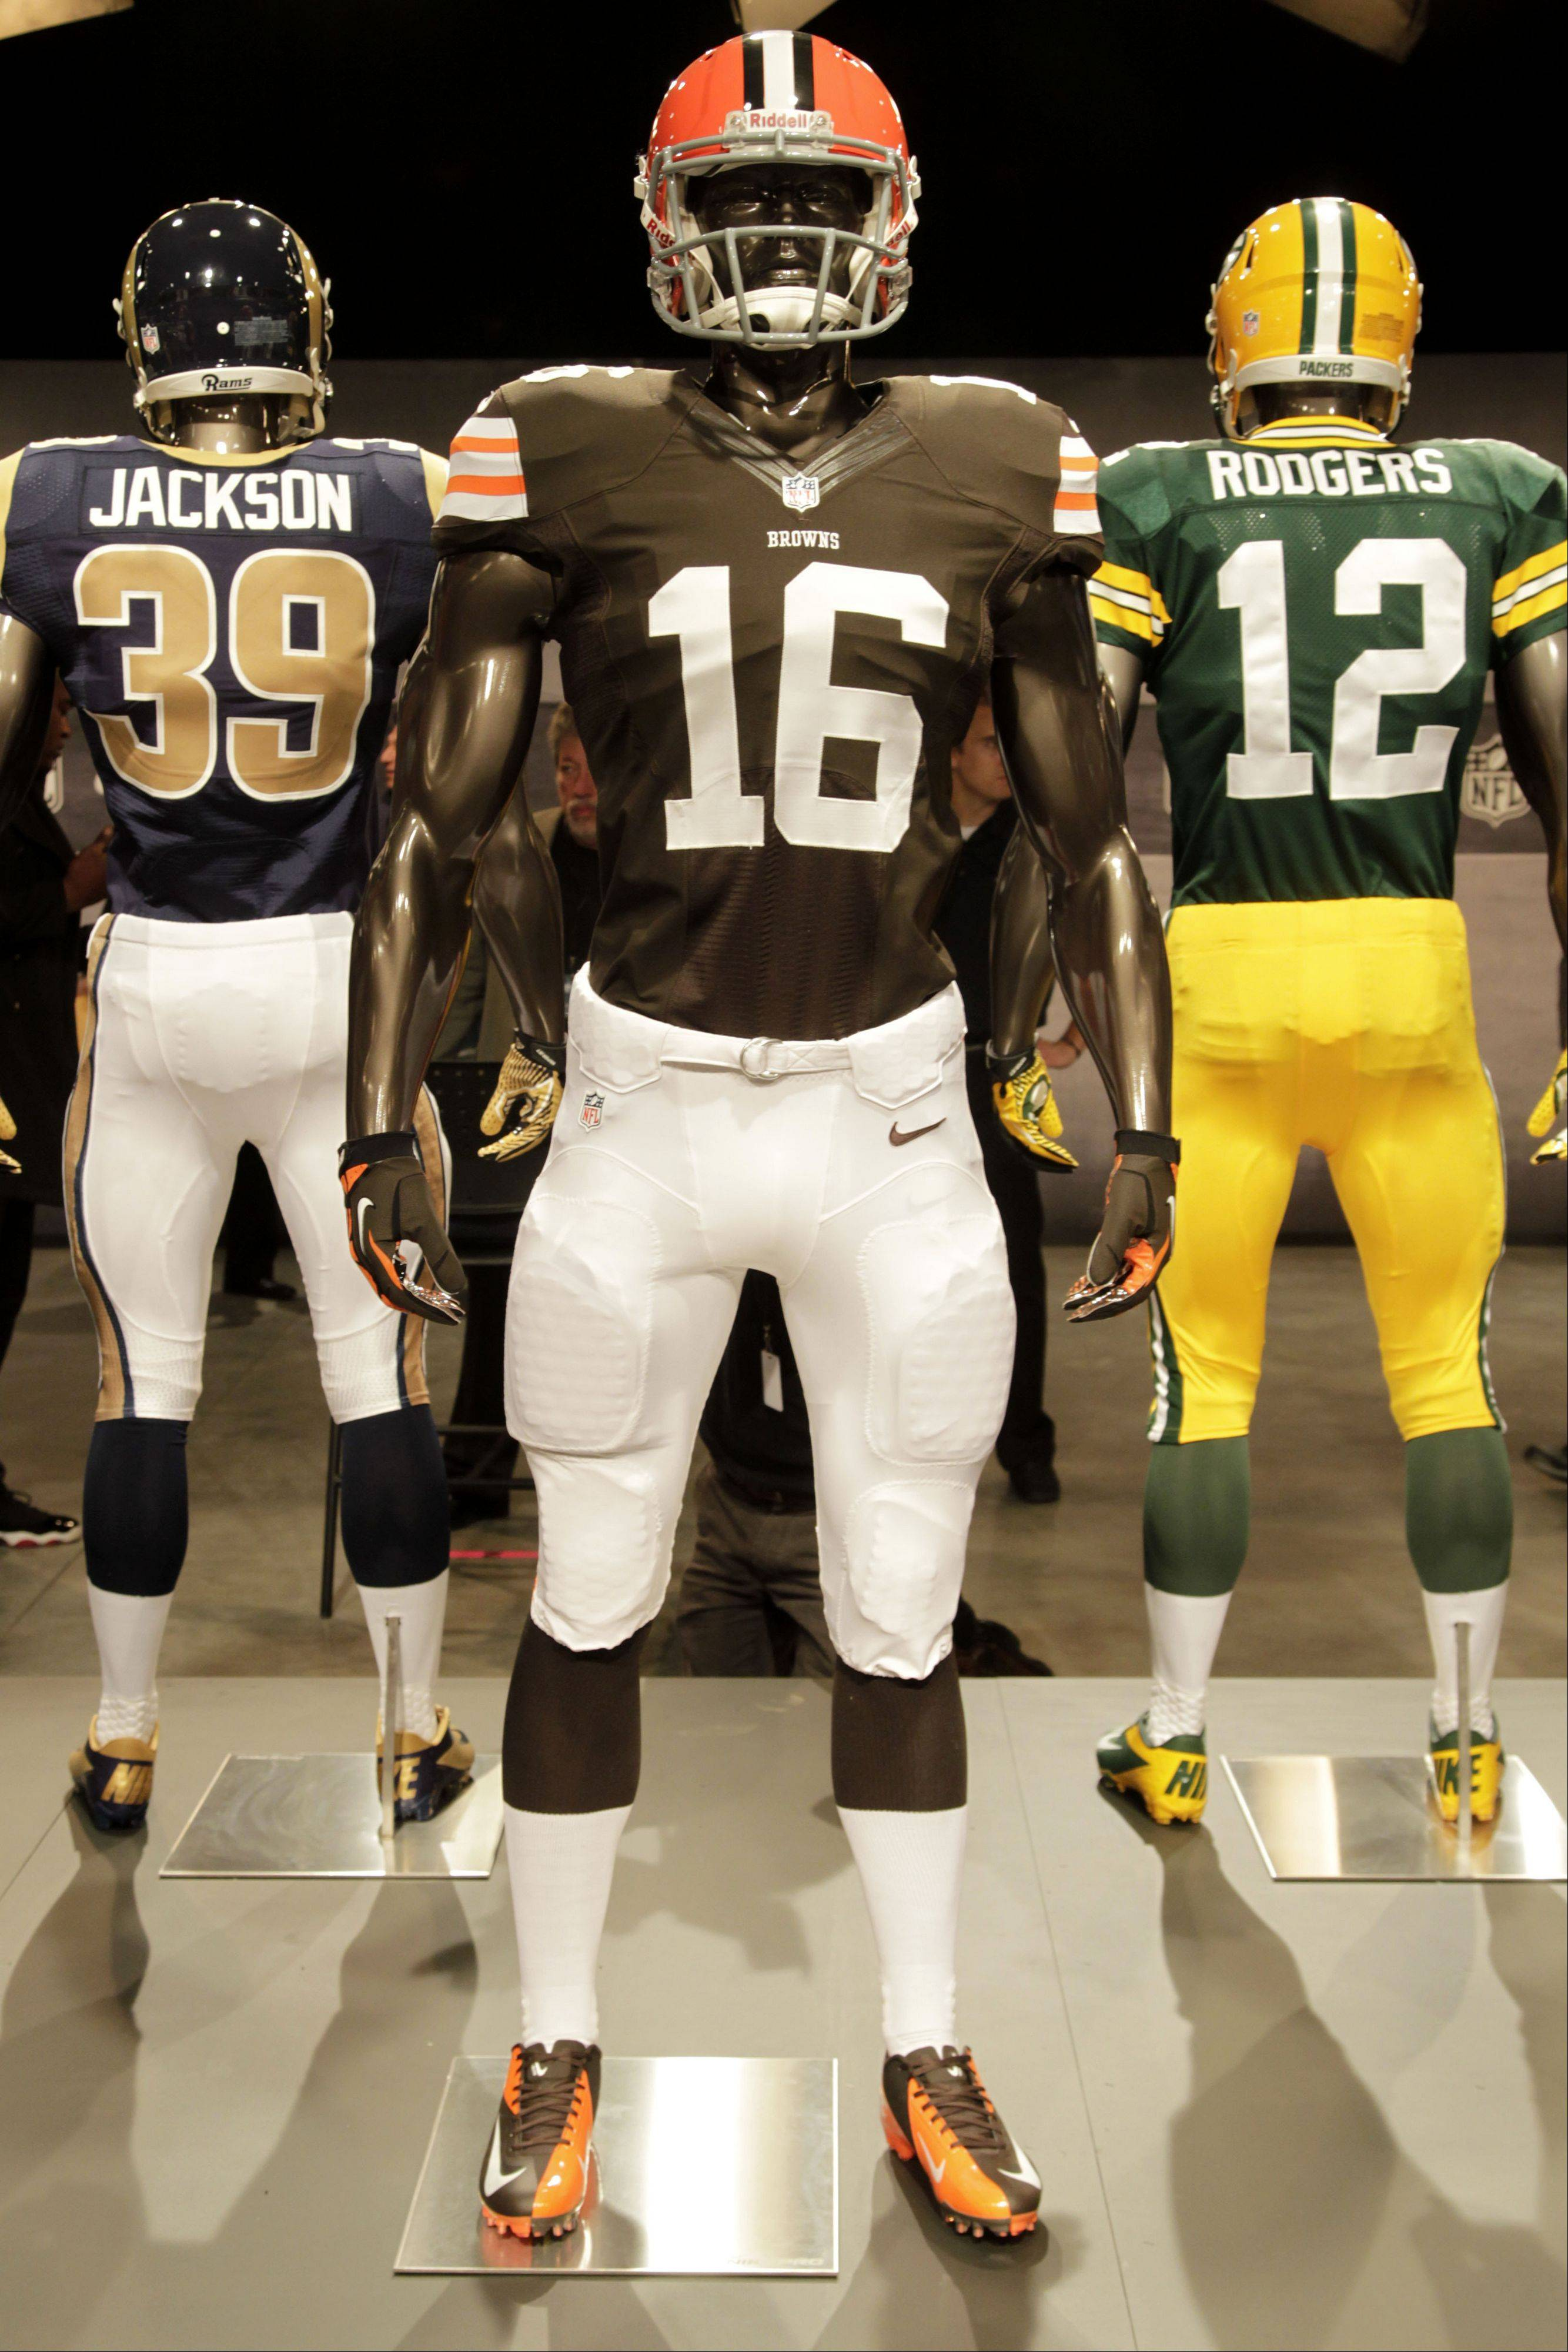 The new Cleveland Browns uniform is displayed on a mannequin in New York, Tuesday, April 3, 2012. NFL has unveiled its new sleek uniforms designed by Nike. While most of the new uniforms are not very different visually, they all are made with new technology that make them lighter, dryer and more comfortable.